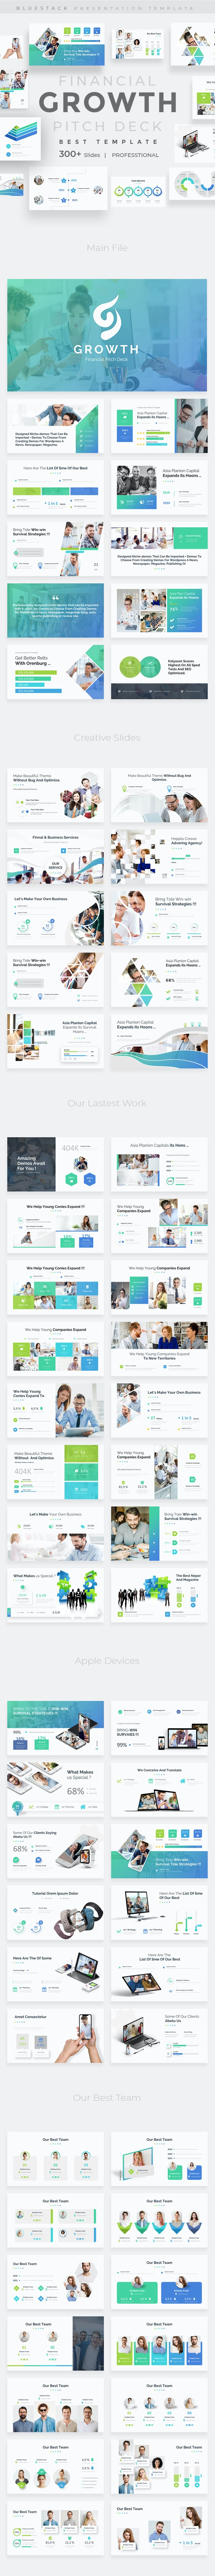 Financial Growth Pitch Deck Powerpoint Template - Business PowerPoint Templates